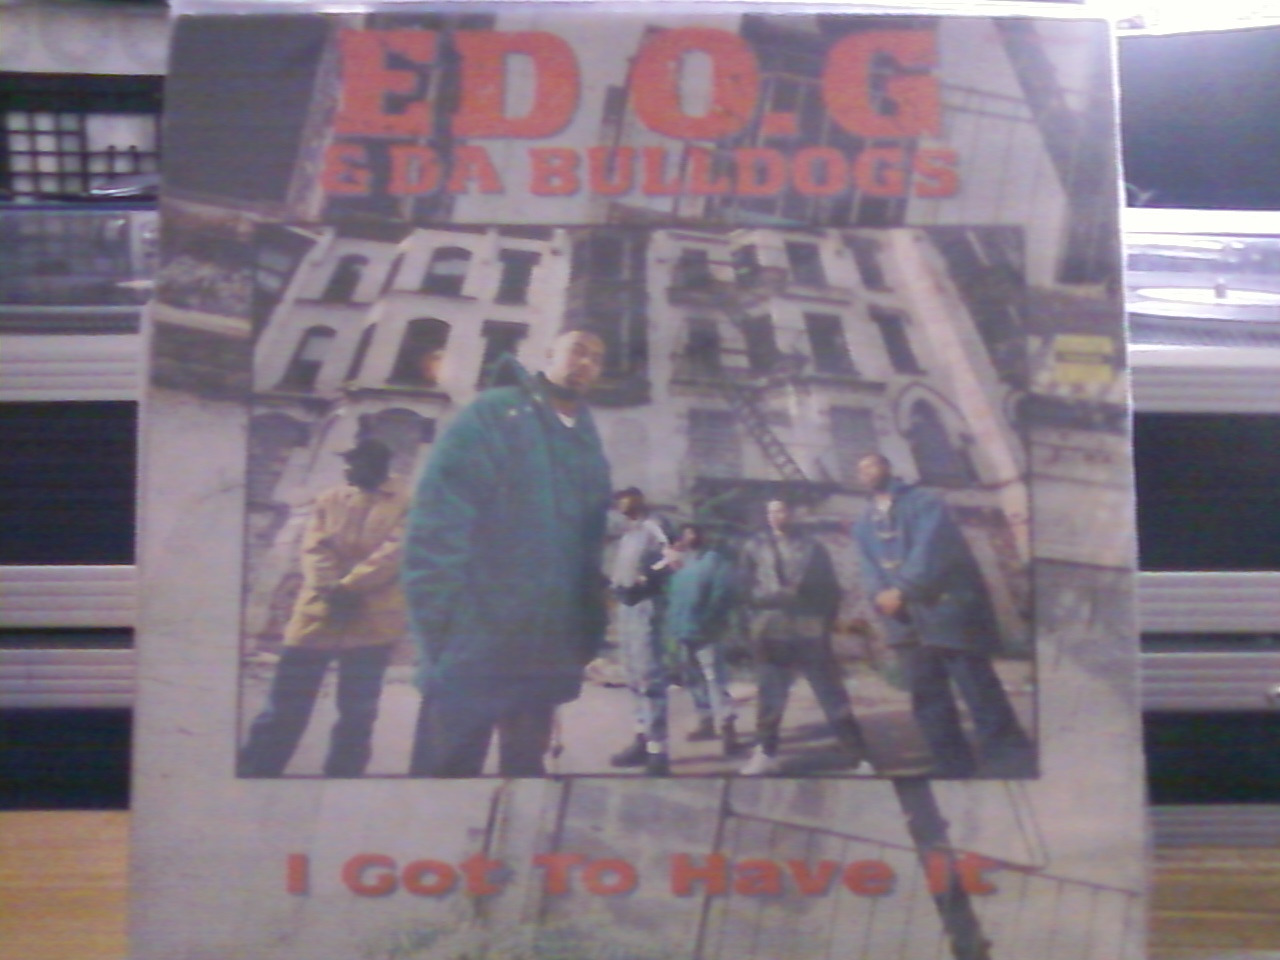 Edo_G_I_Got_To_Have_It